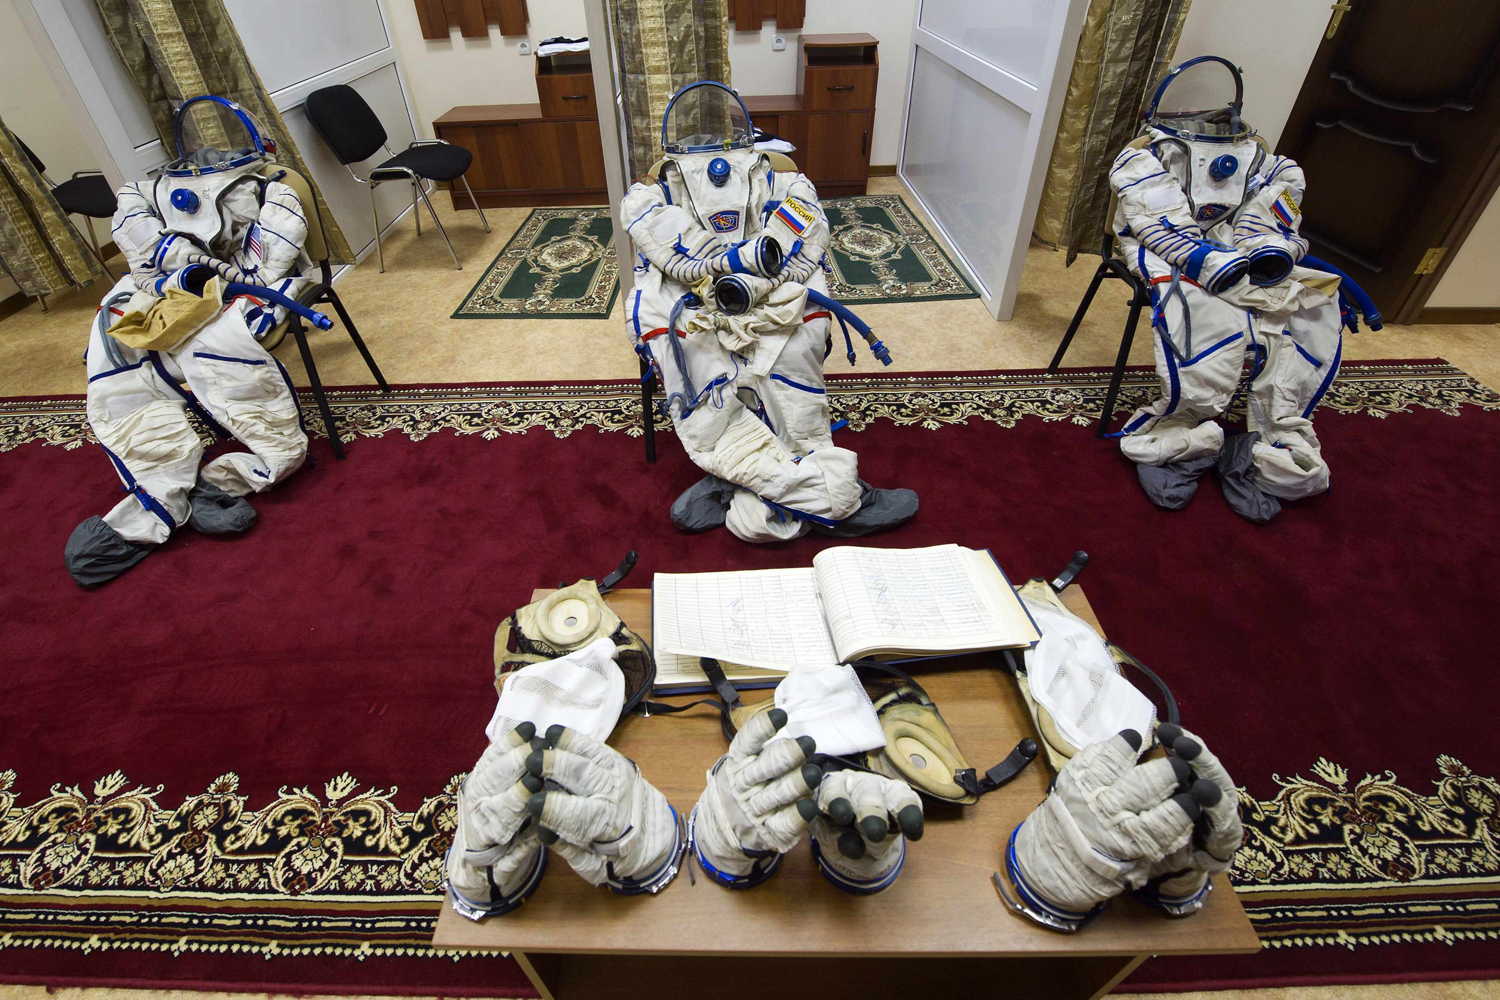 Feb. 18, 2013. Spacesuits are left on chairs before cosmonauts' training session at the Russian cosmonaut training facility in Star City outside Moscow, Russia.